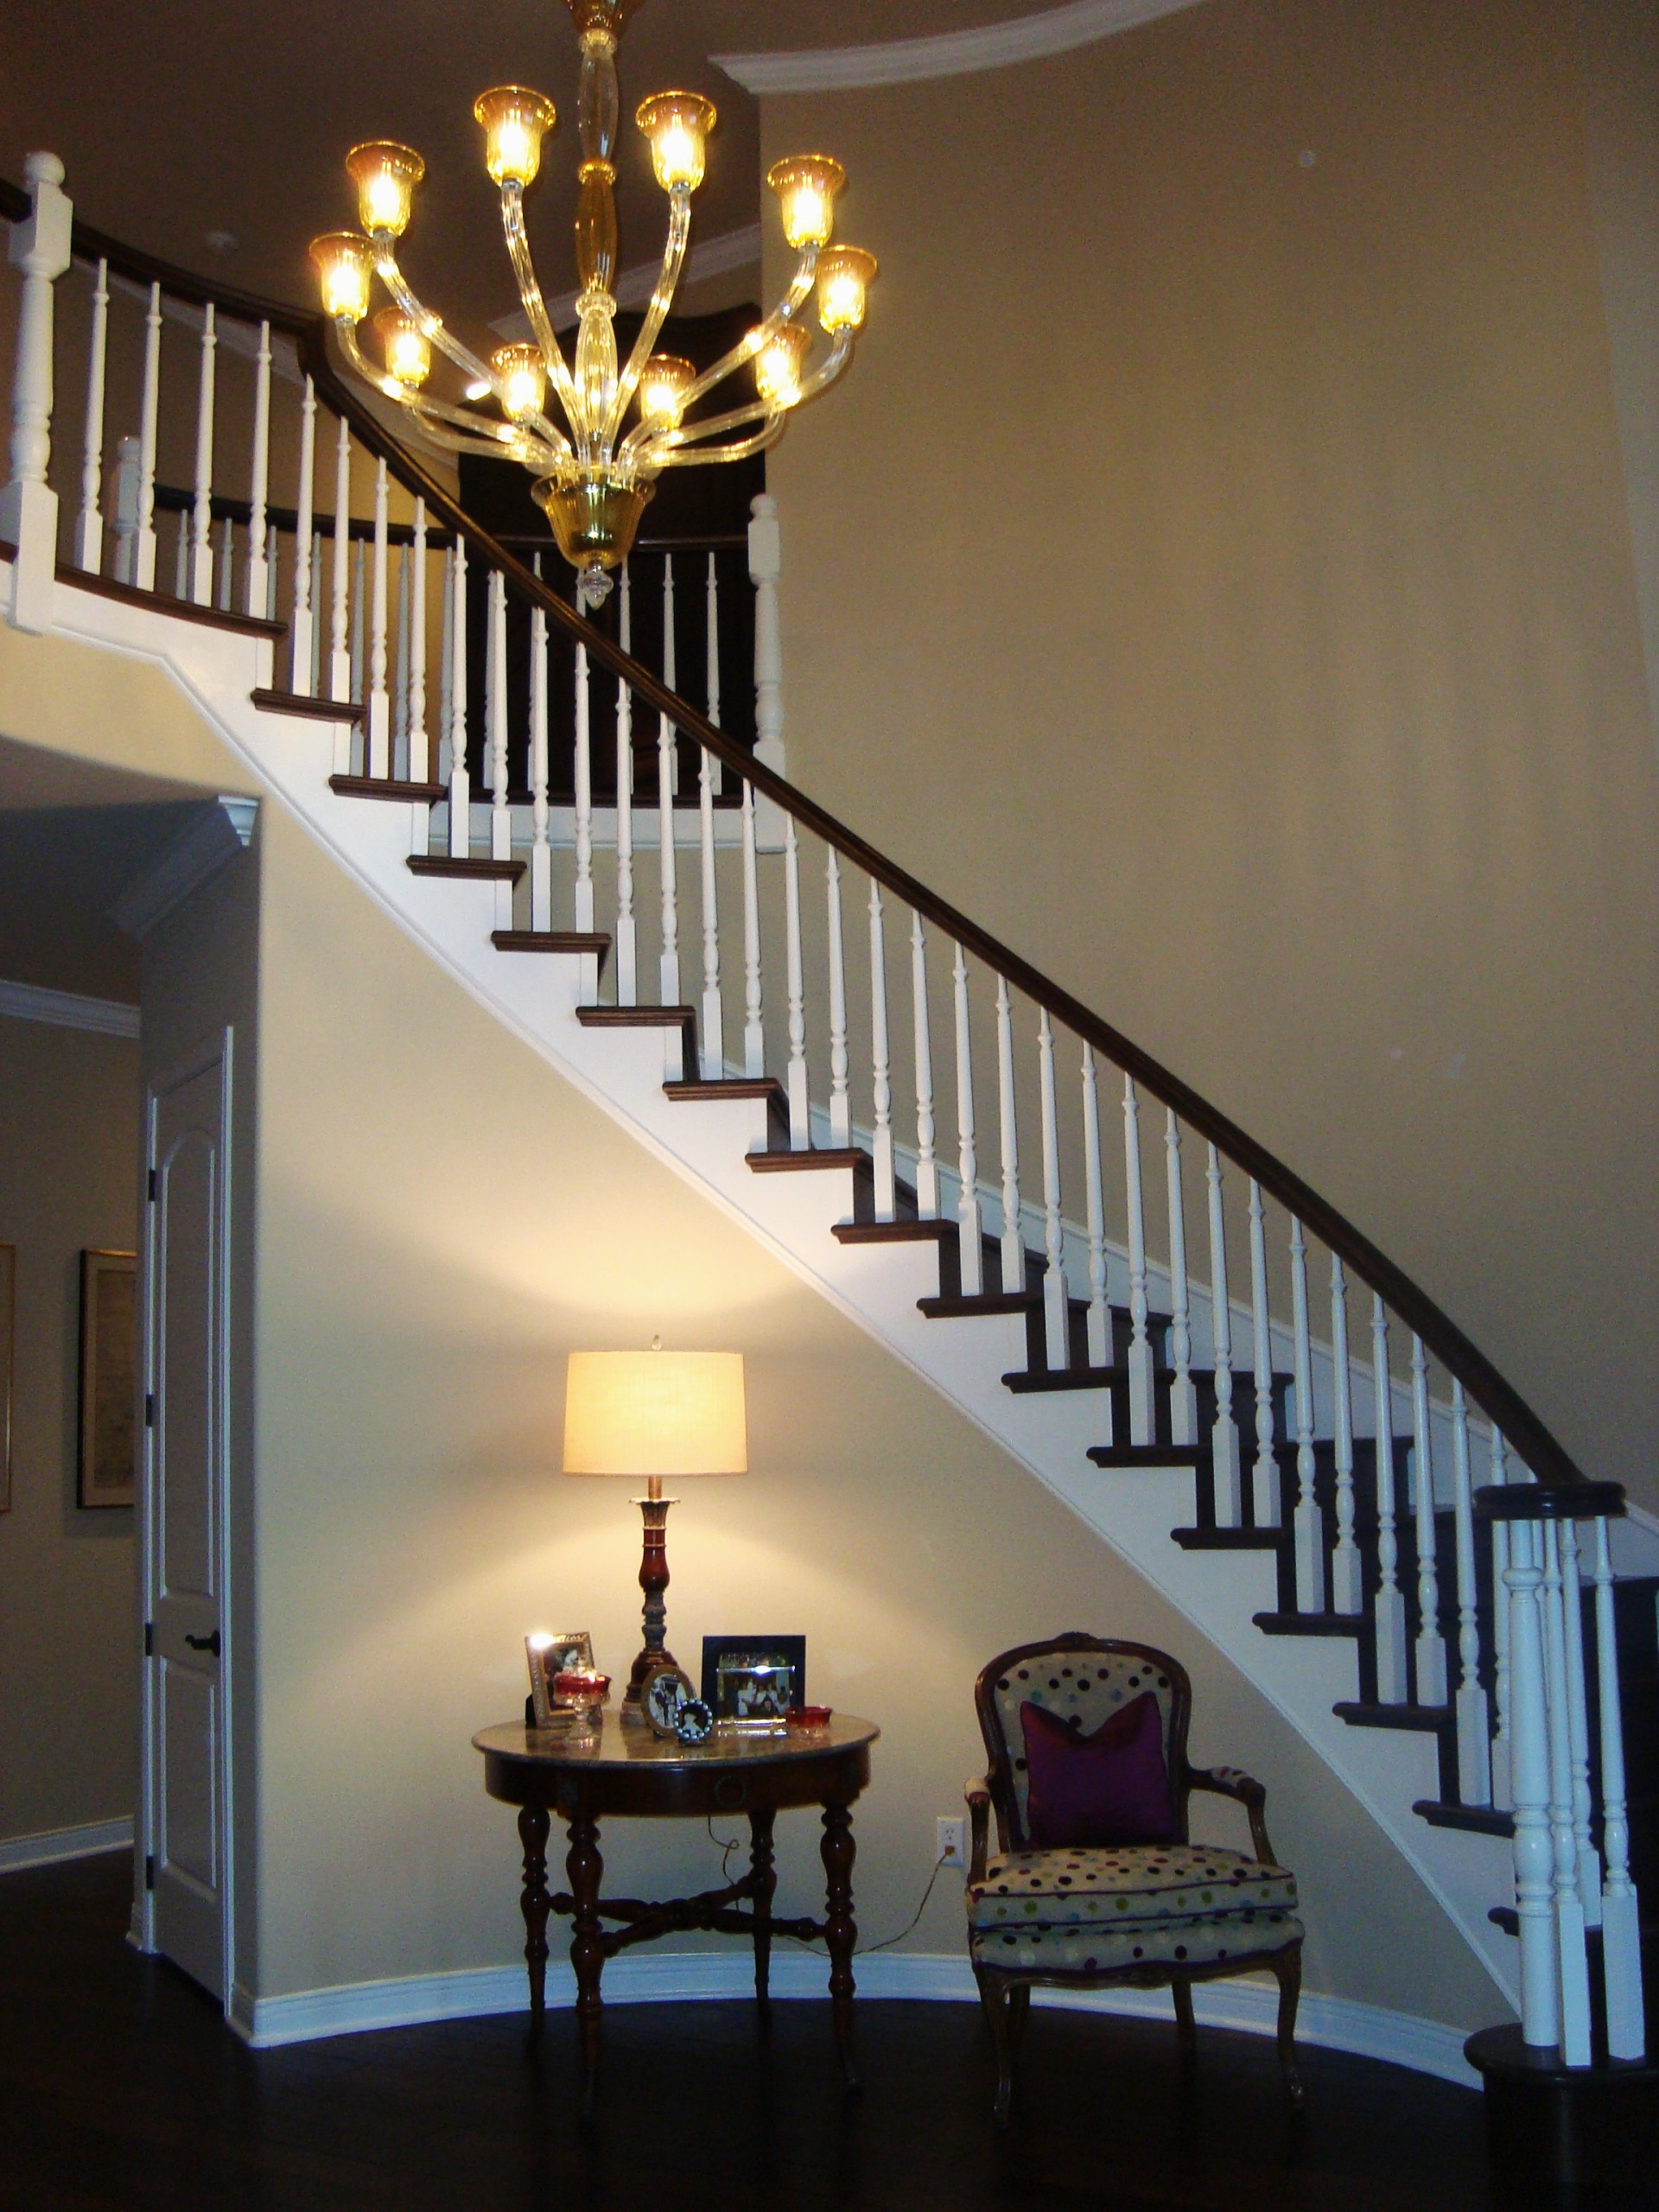 The NEW Nolan Entry Staircase with Venetian Glass Chandelier